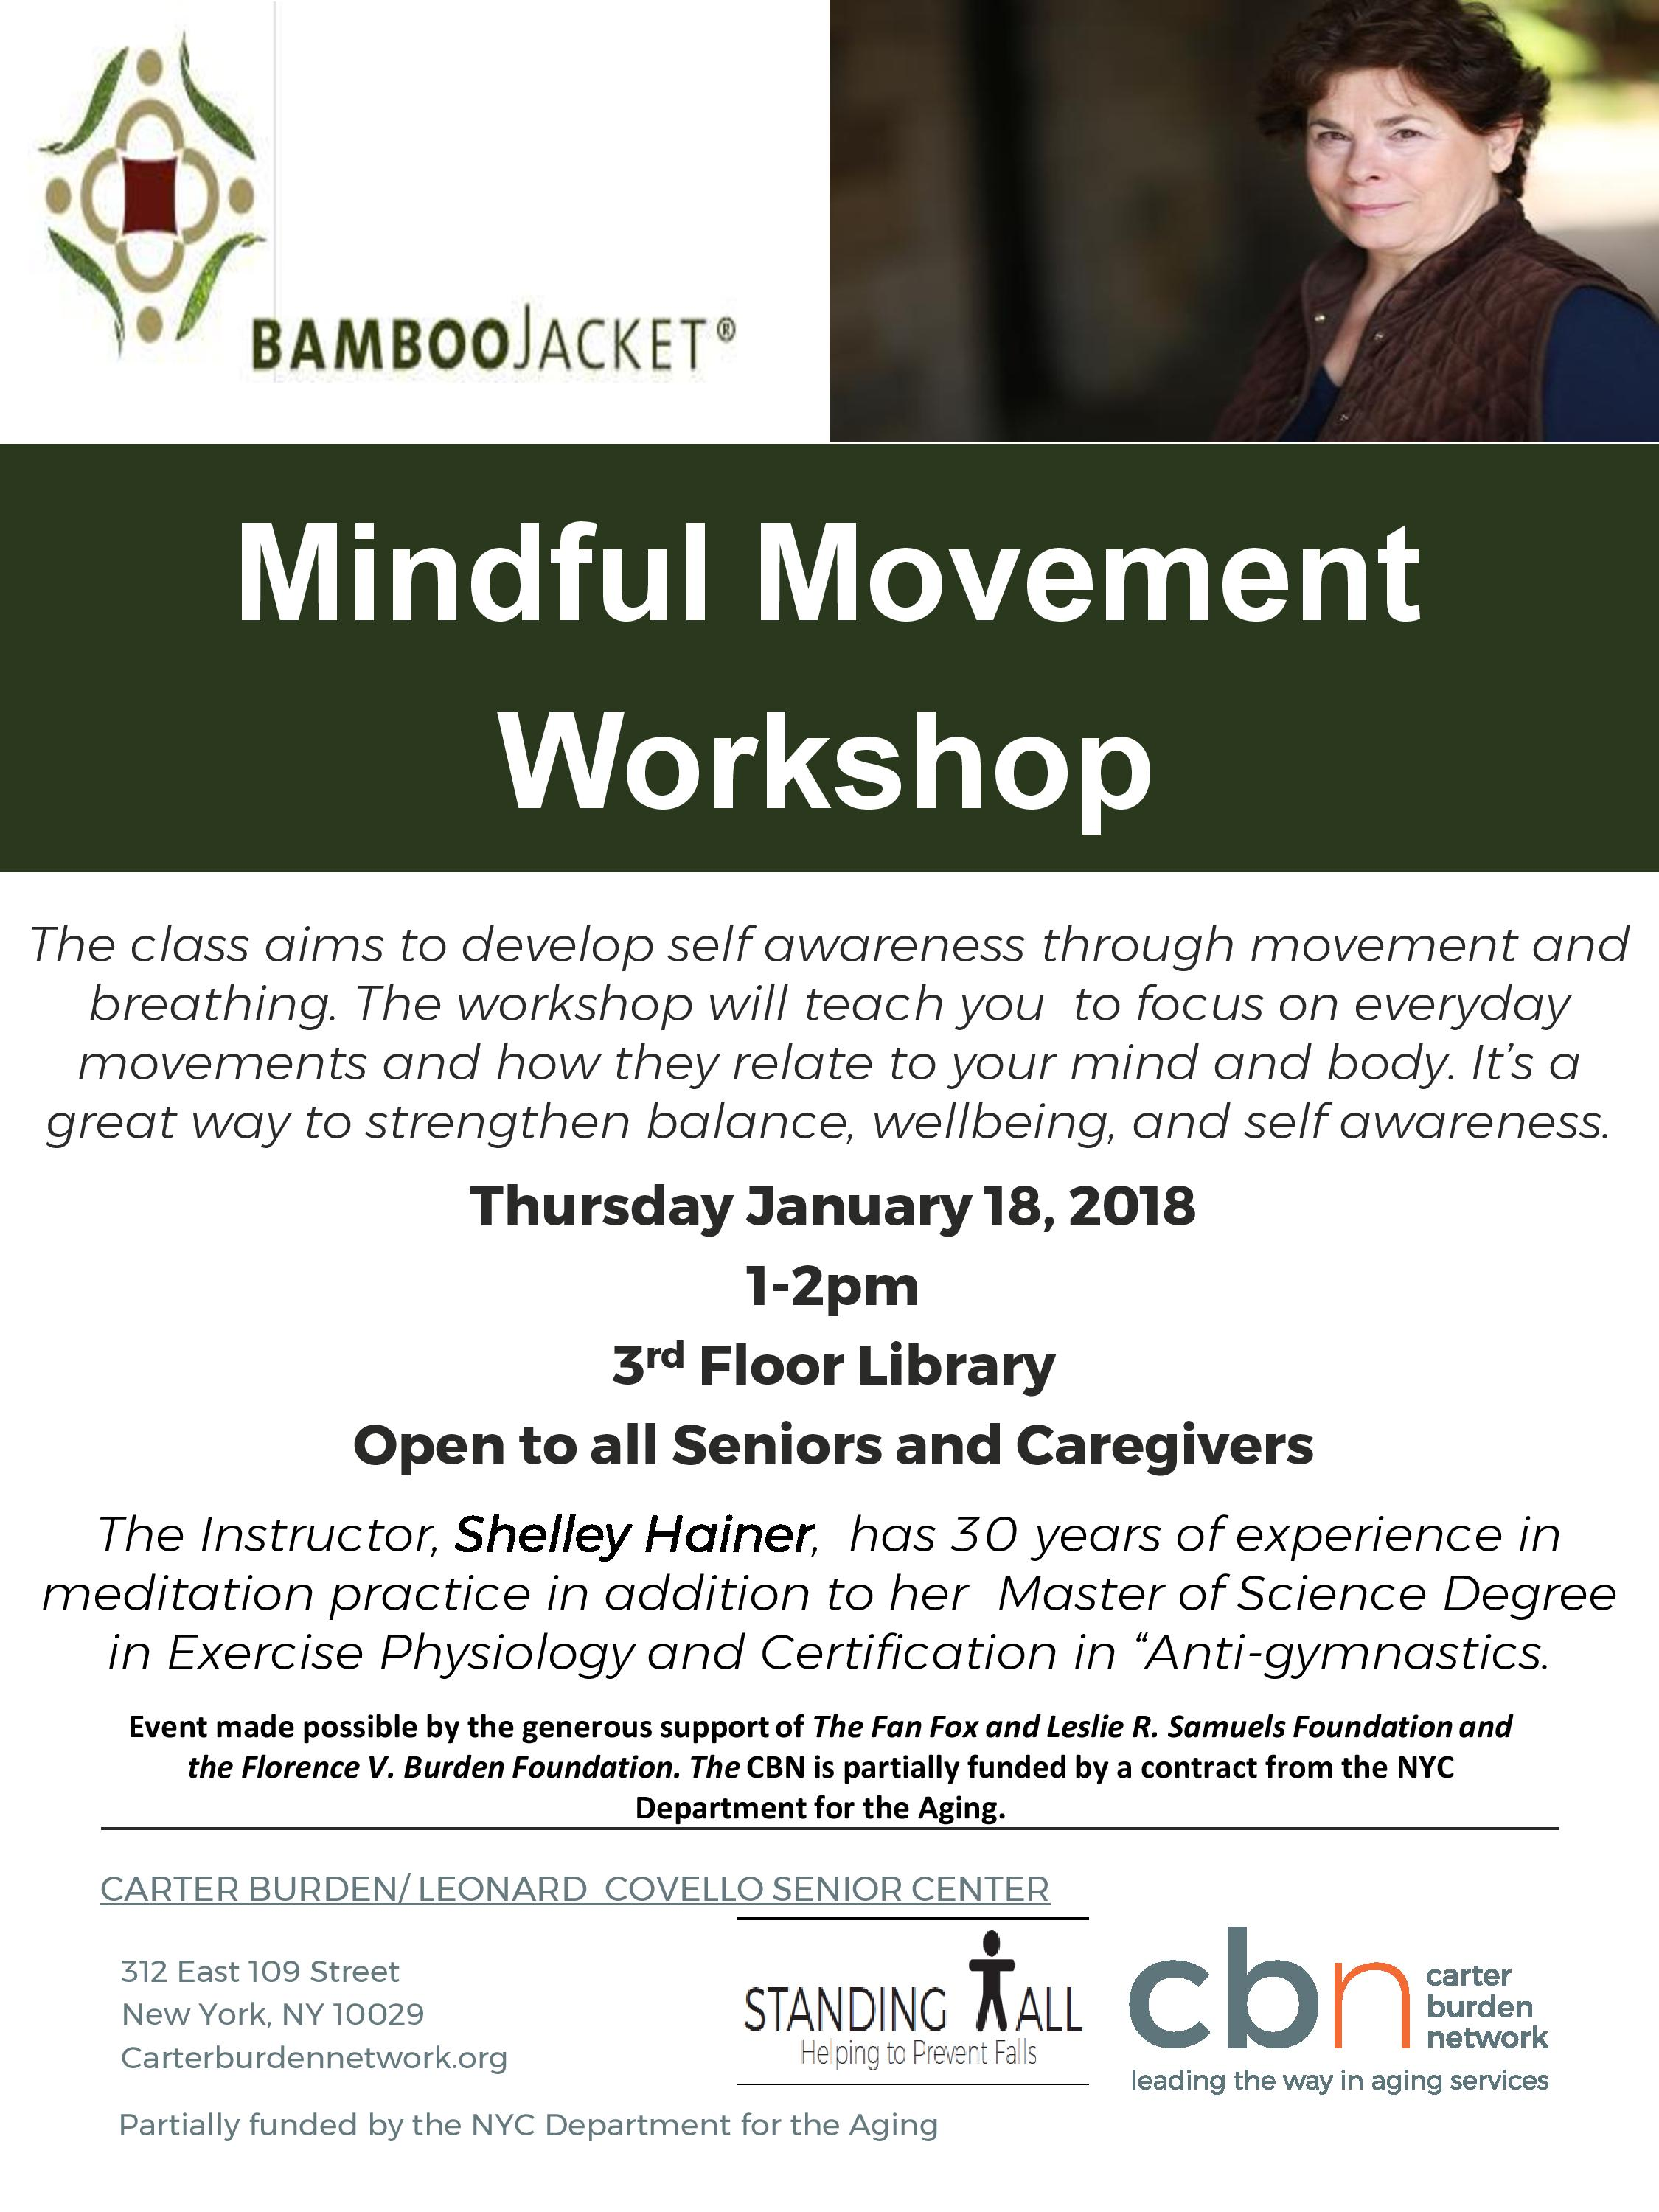 Mindful movement flyer version 2-page-001.jpg